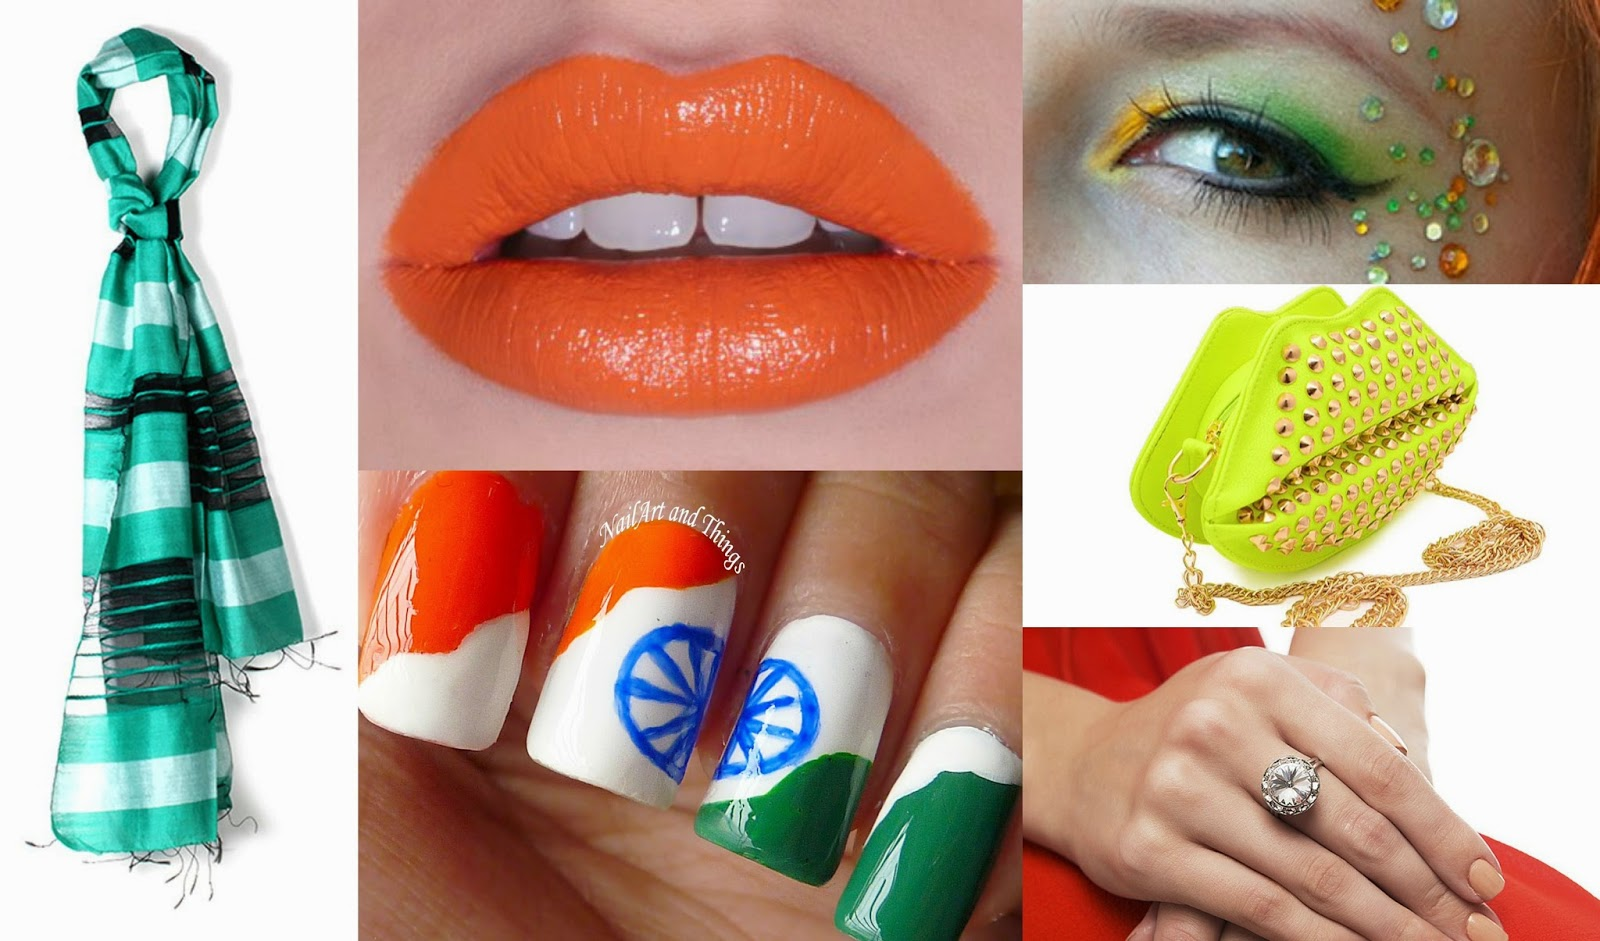 Style-Sensibility: TRICOLOR MAKE-UP NAILS AND ACCESSORIES